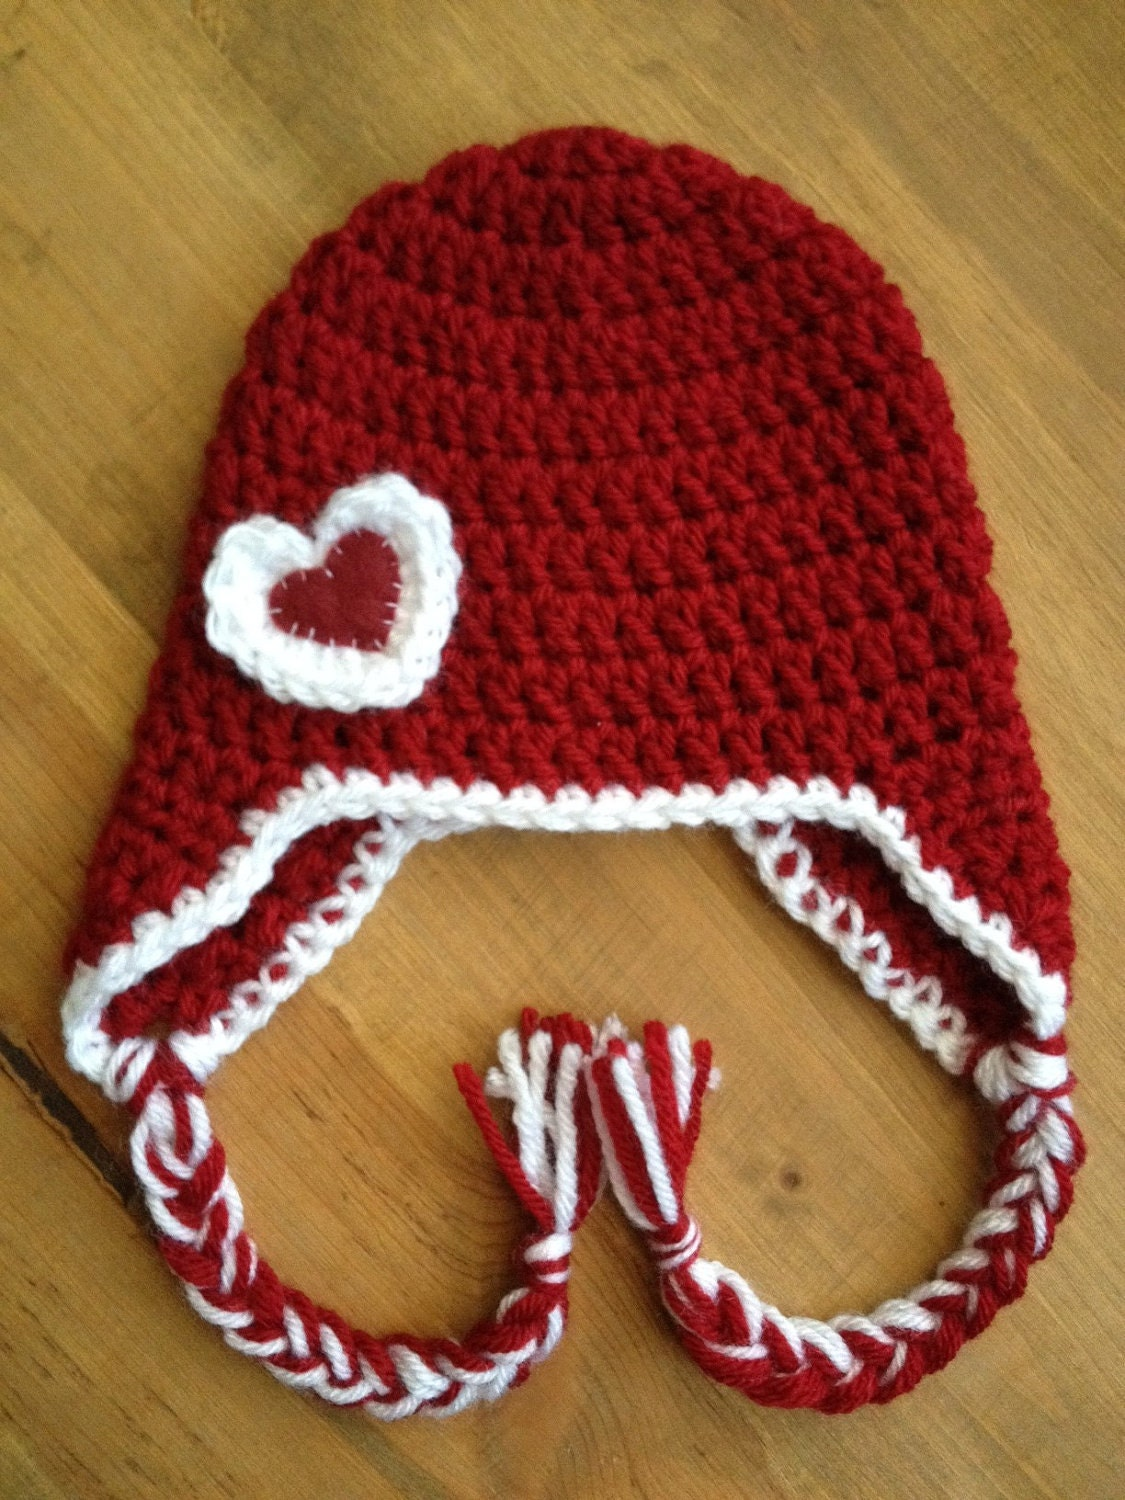 Crochet Valentine Hat : Crochet VALENTINES DAY beanie hat photo prop by CoconutFrosting